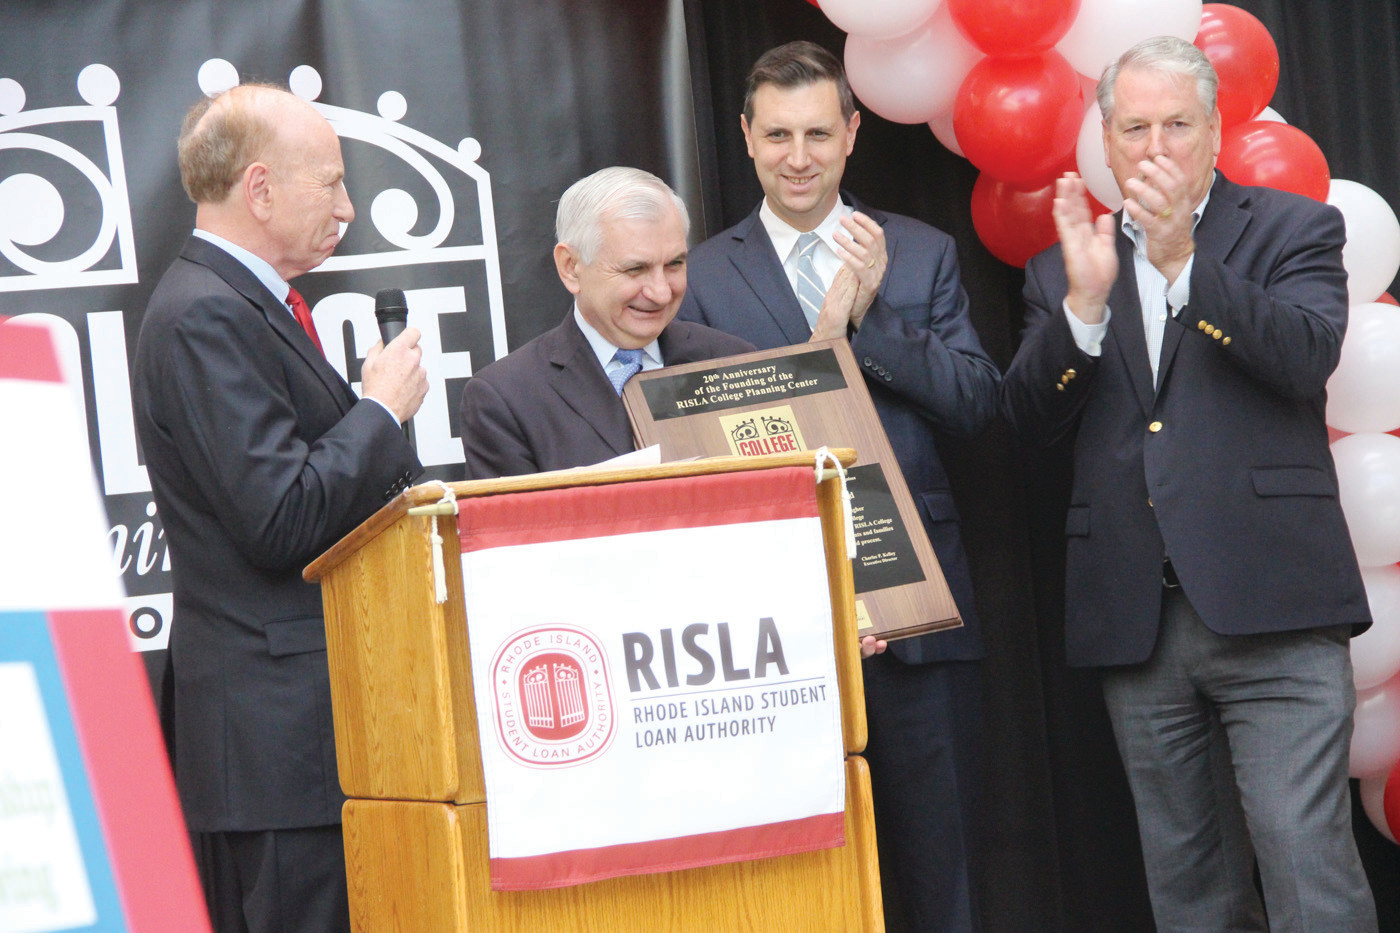 CHEERS: Senator Jack Reed accepts a plaque in recognition for his role in establishing the College Planning Center at Tuesday's anniversary celebration. With him from left are Charles Kelley, executive director of the RI Student Loan Authority; General Treasurer Seth Magaziner and RISLA board chair Robert Delaney.